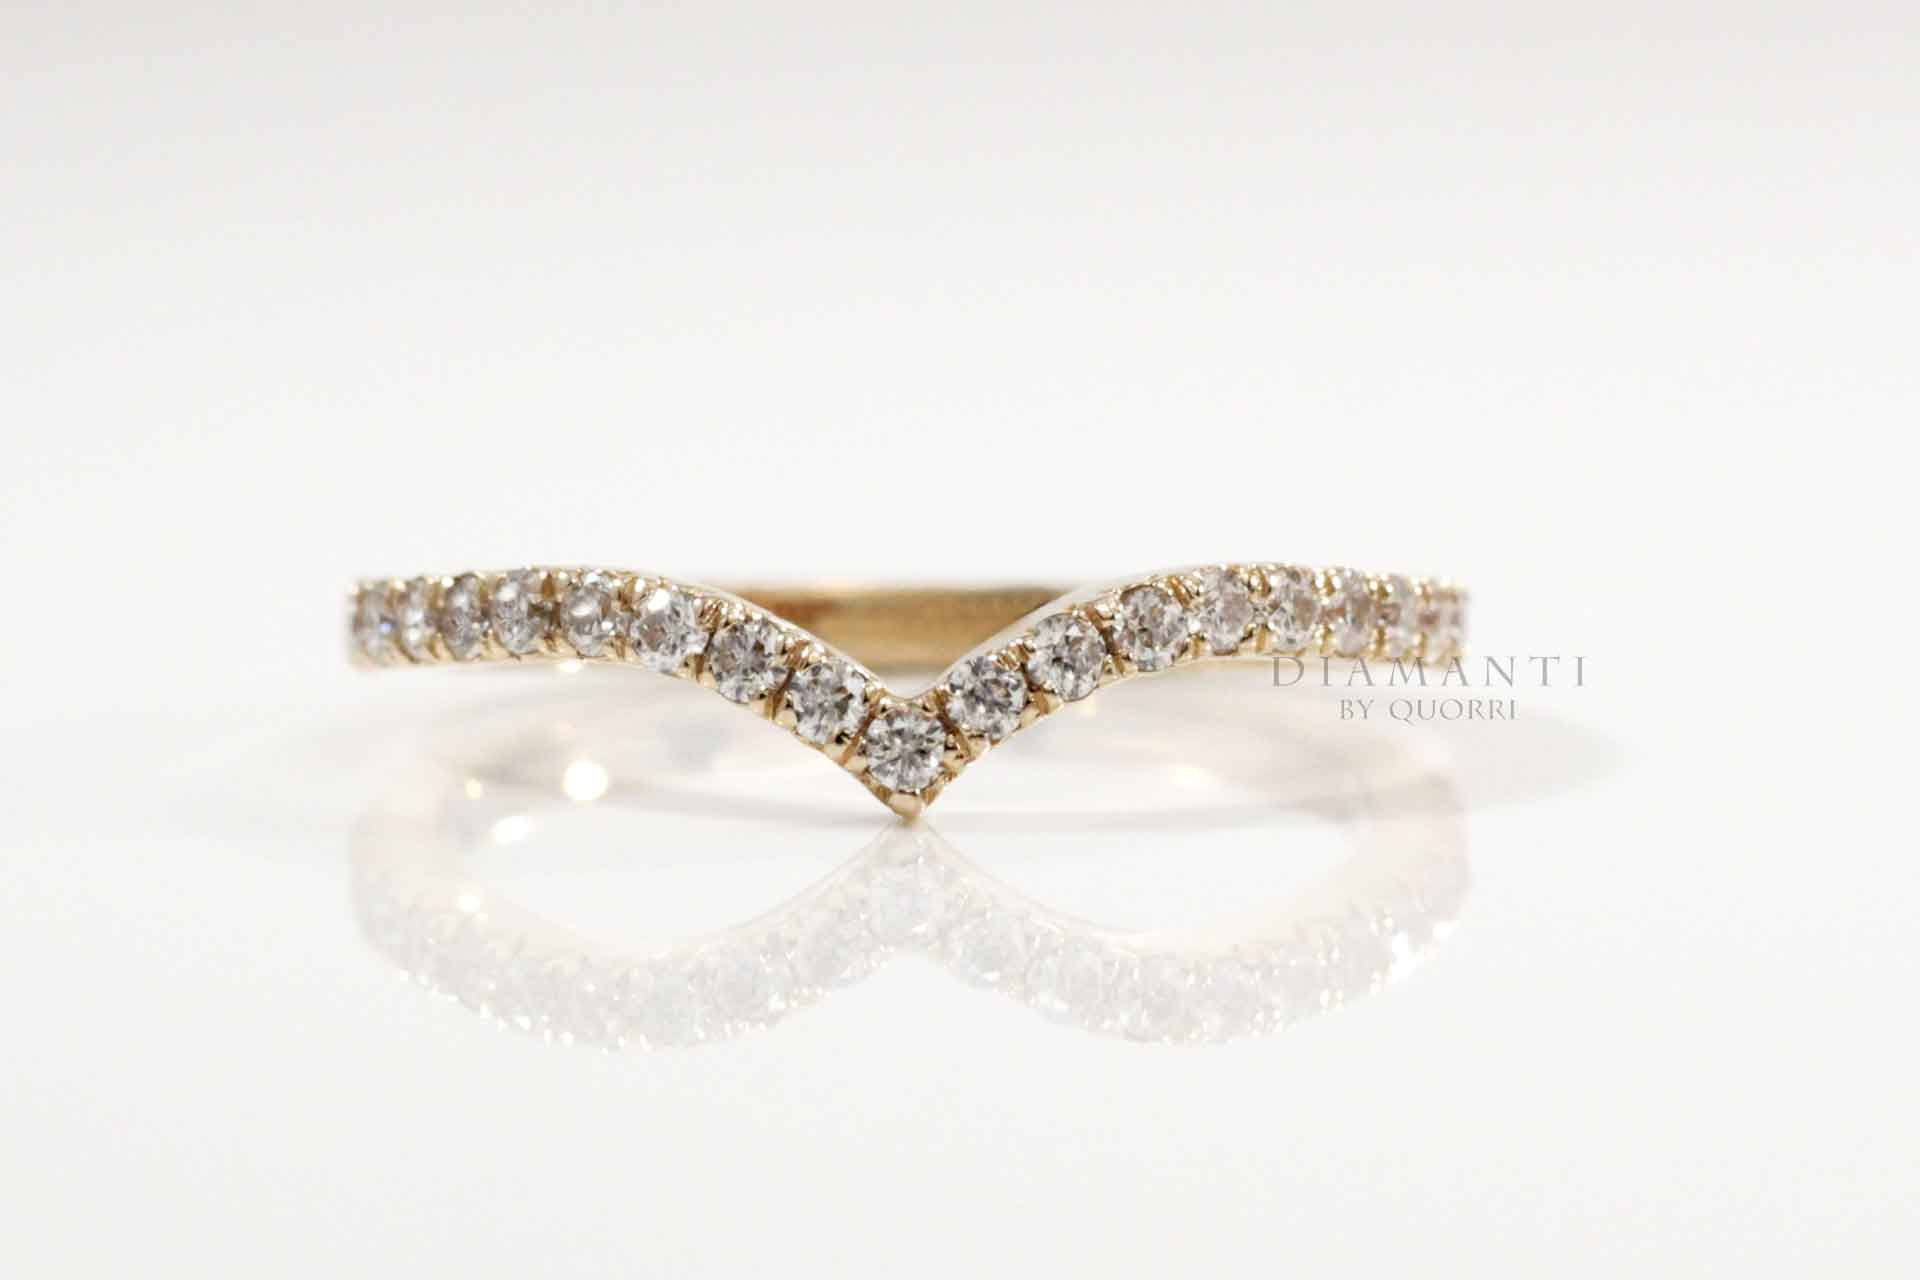 low cost high quality 14k wedding bands at Quorri Canada